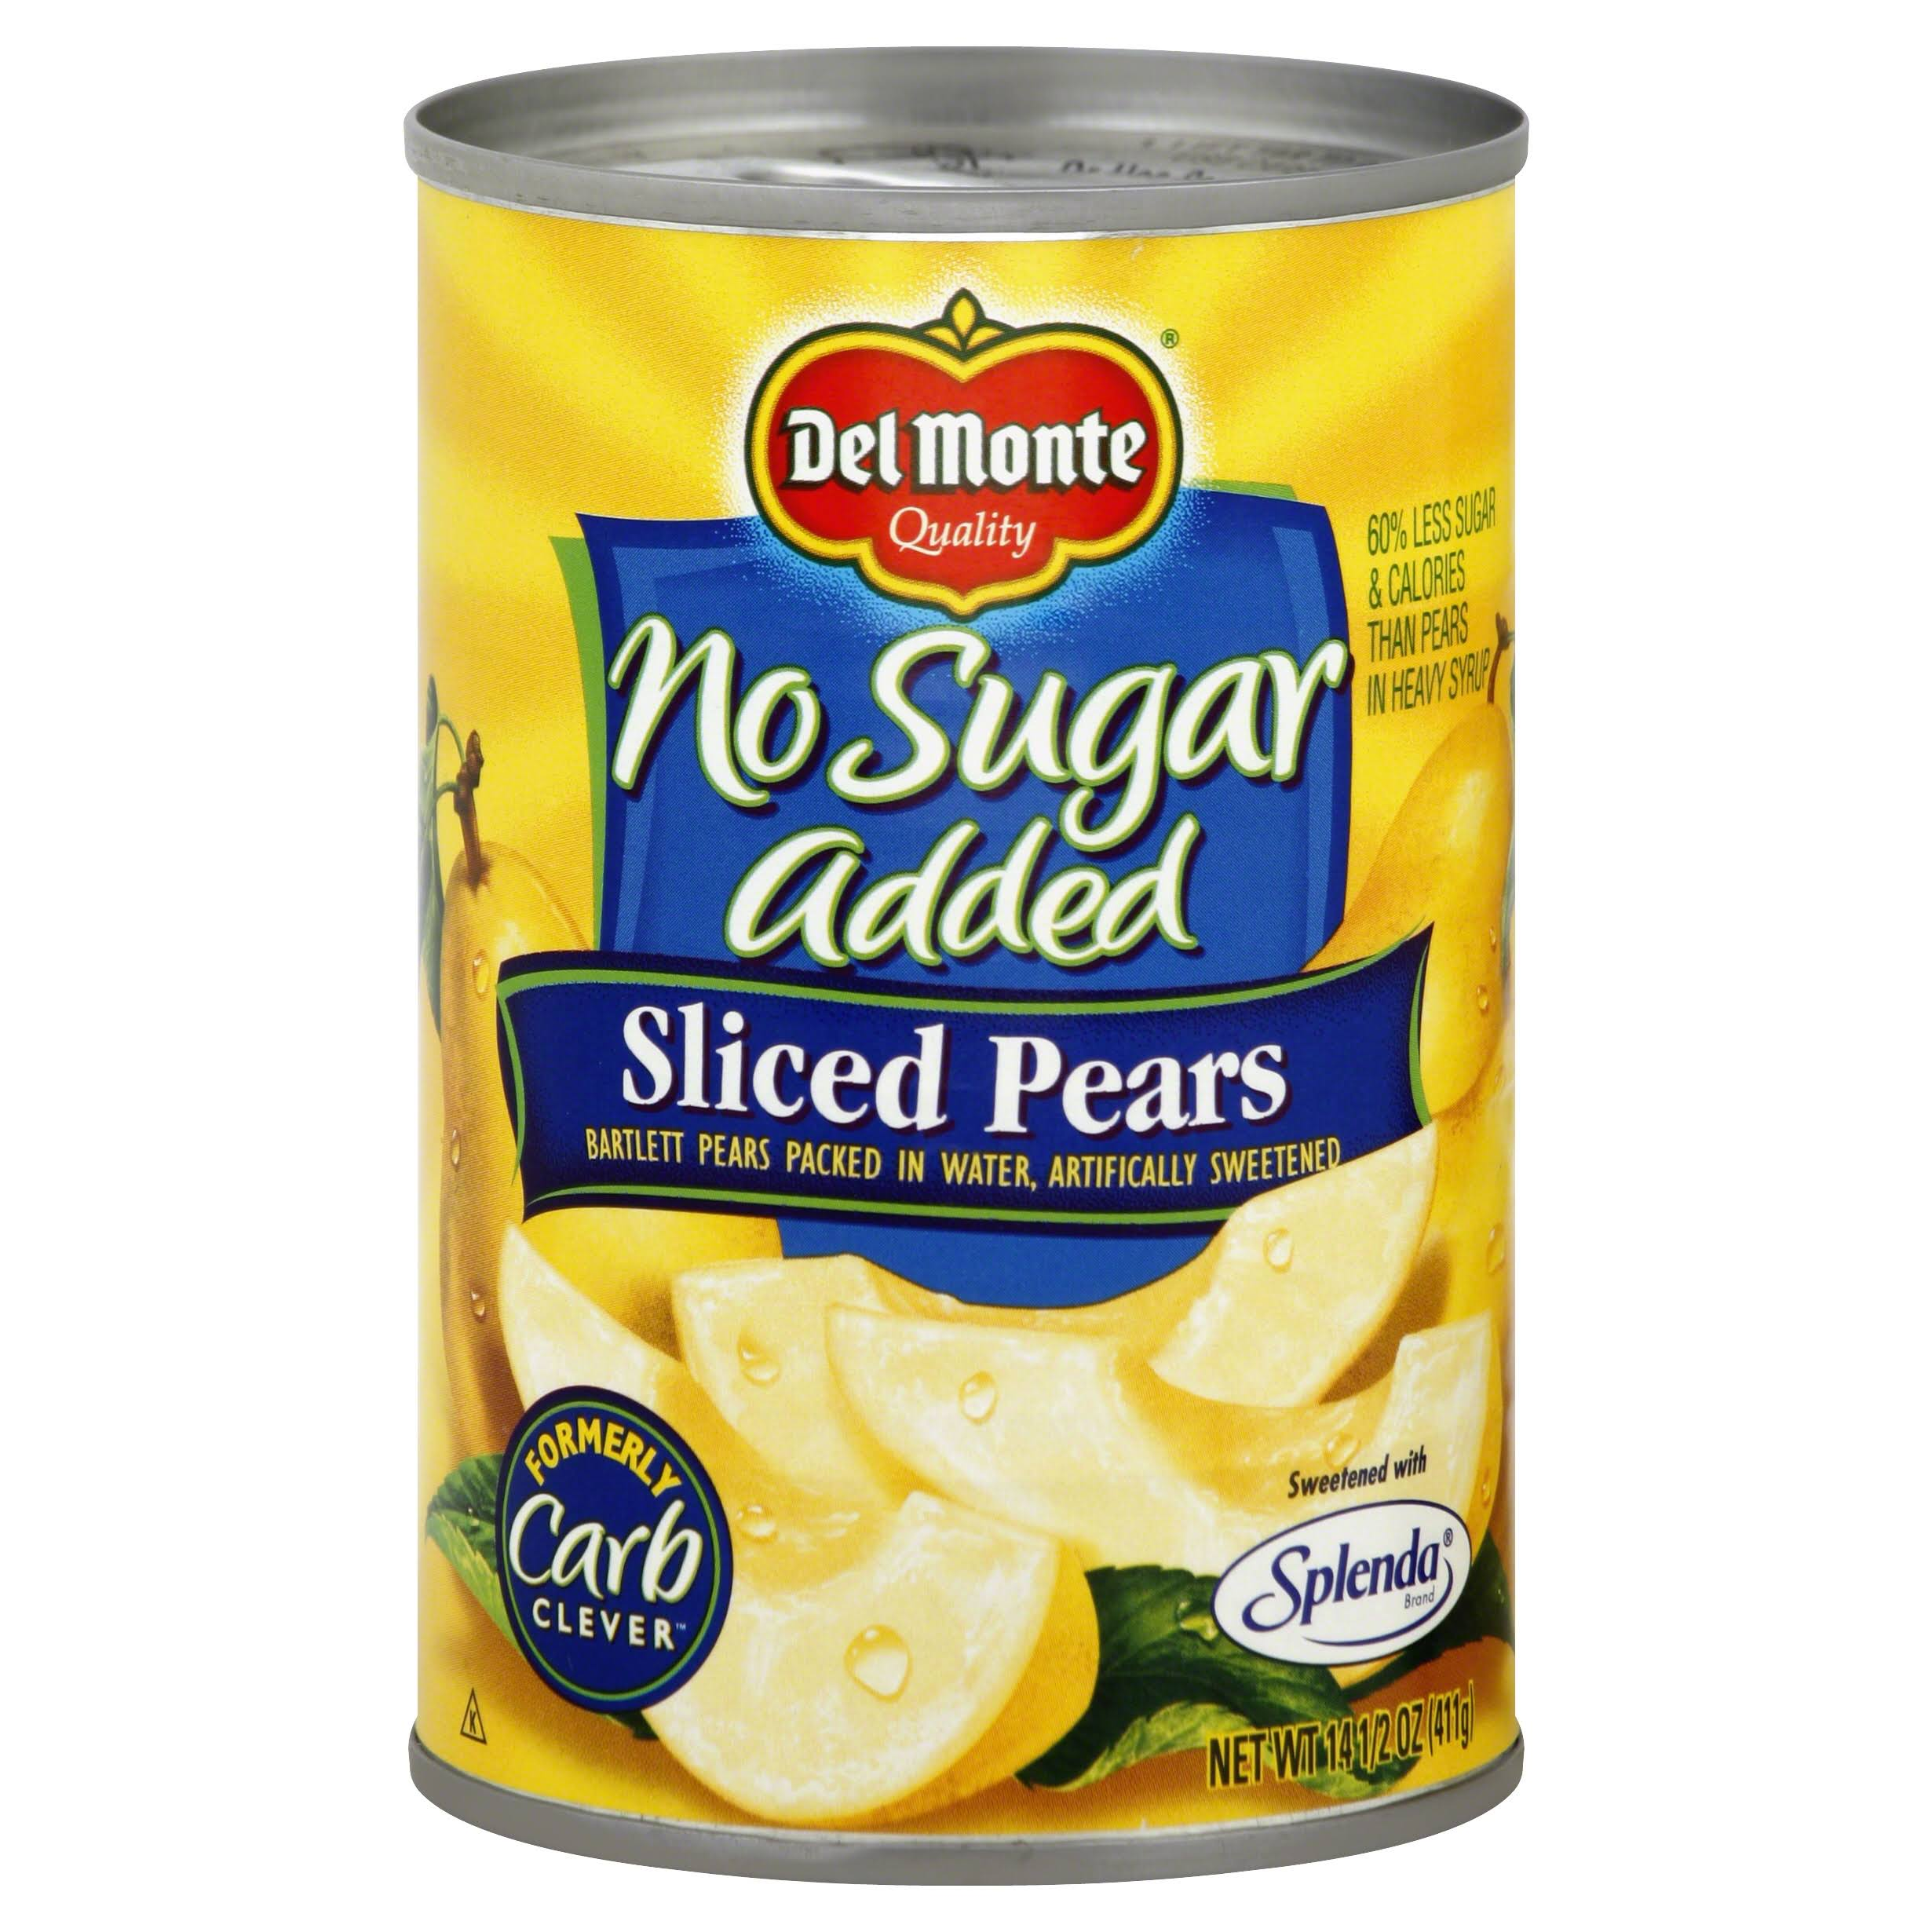 Del Monte No Sugar Added Sliced Pears - 14.5oz